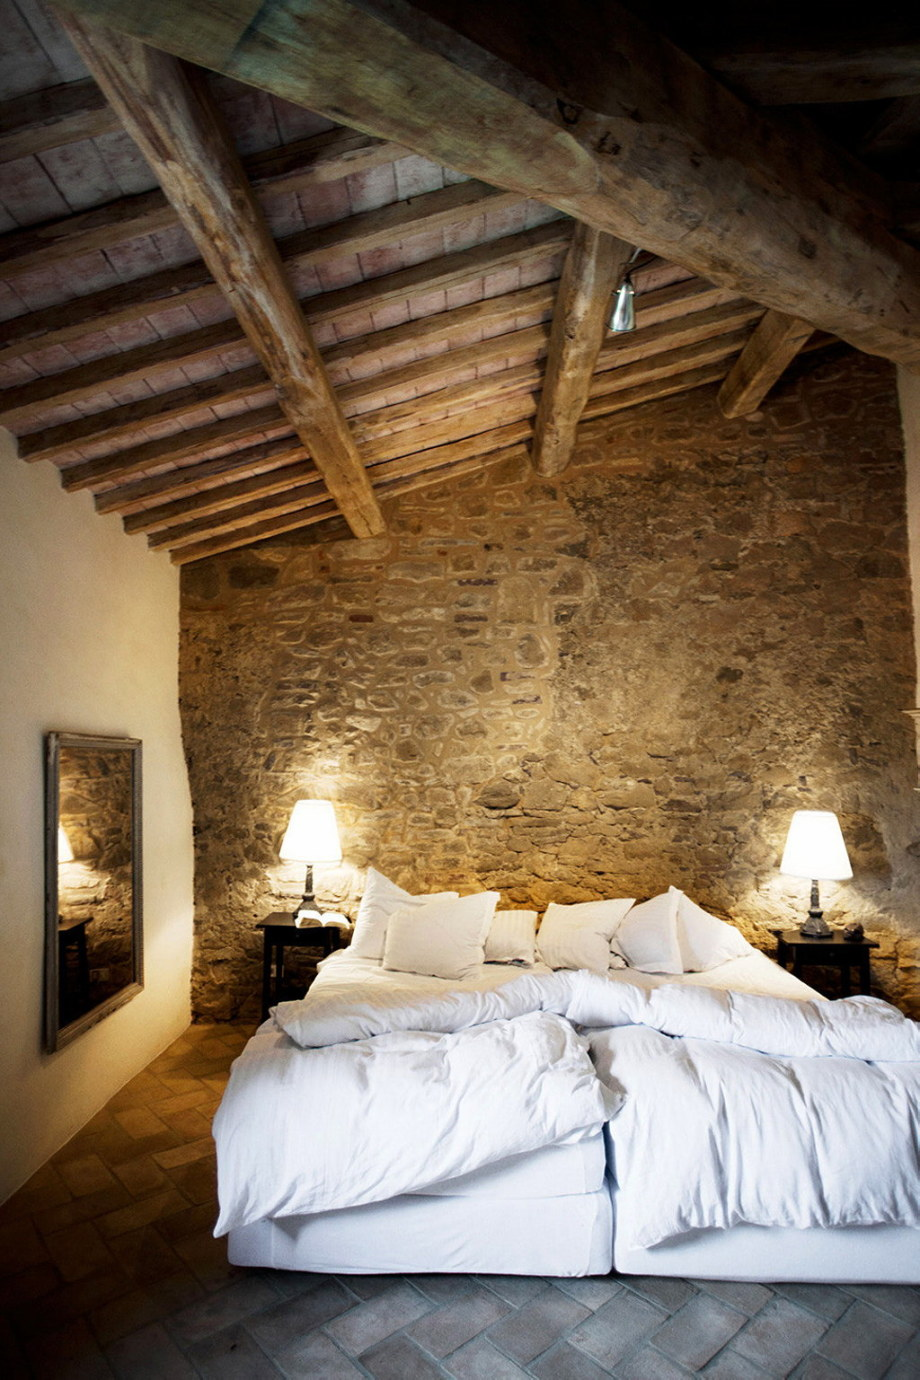 Medieval modern bedroom - Medieval Villa With Modern Conveniences In Italy 21